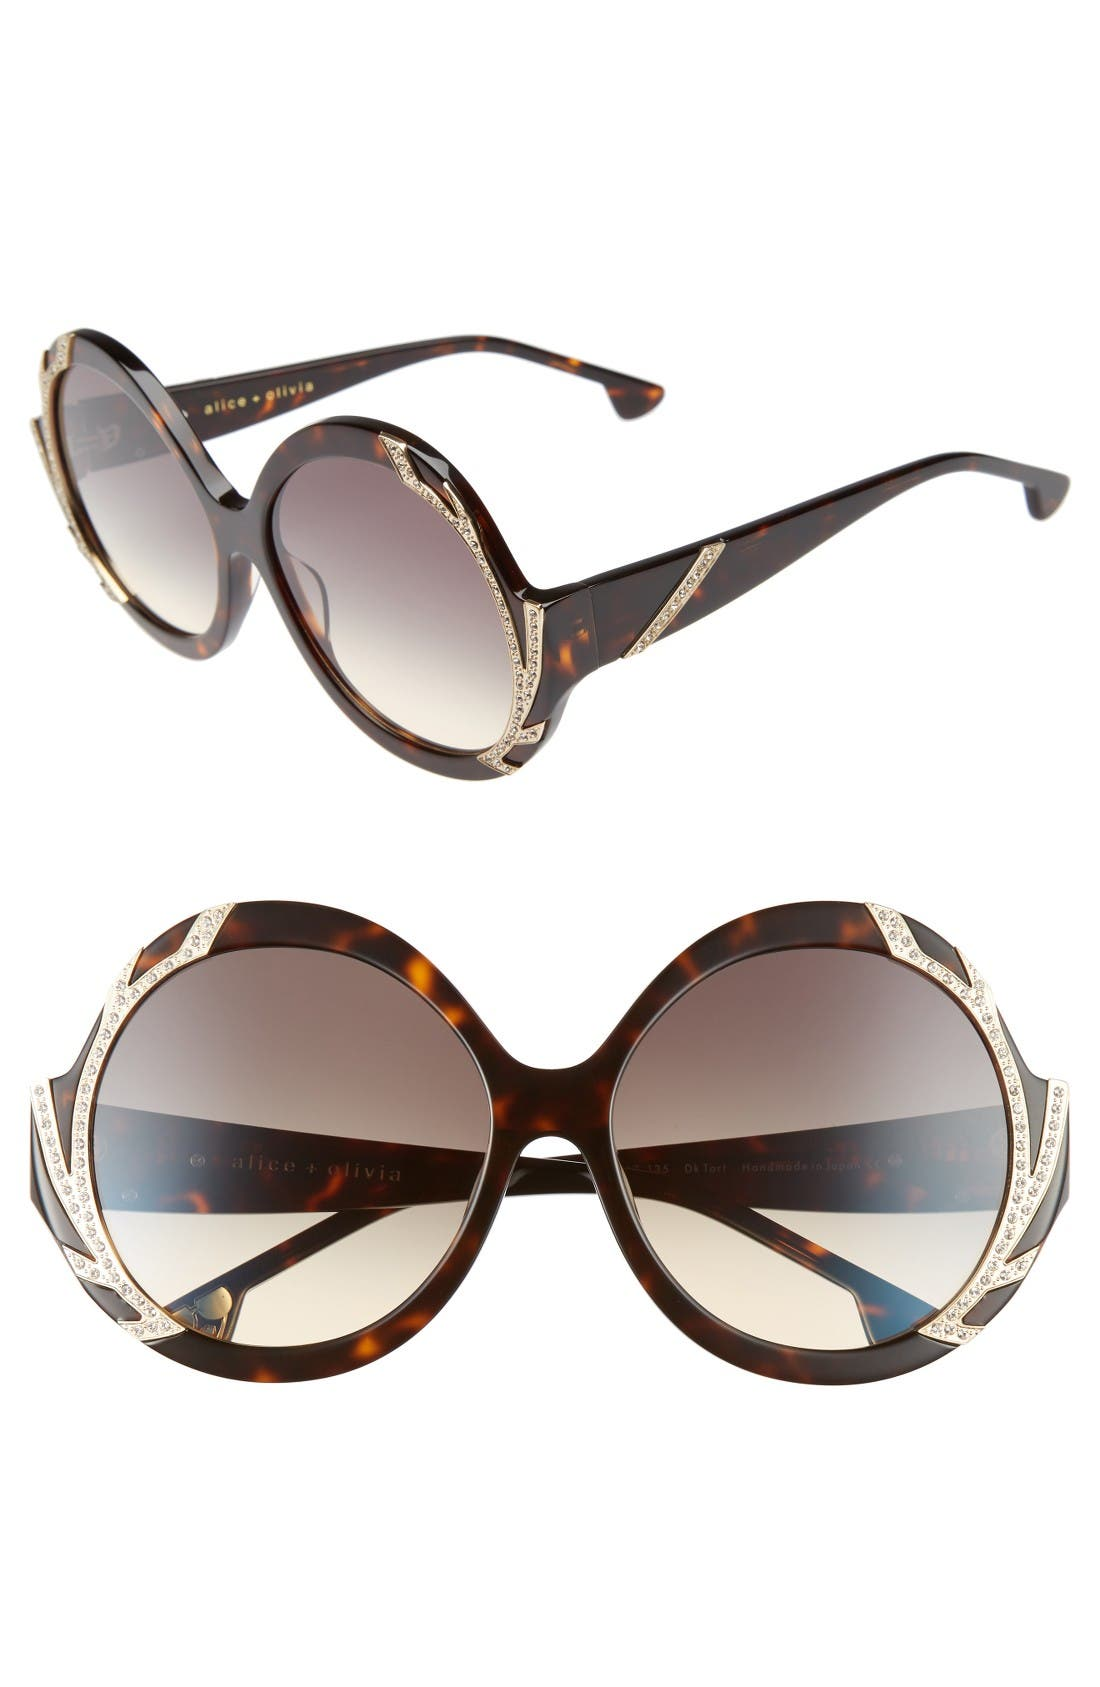 Alice + Olivia Stacey Crystal 59mm Gradient Lens Round Sunglasses